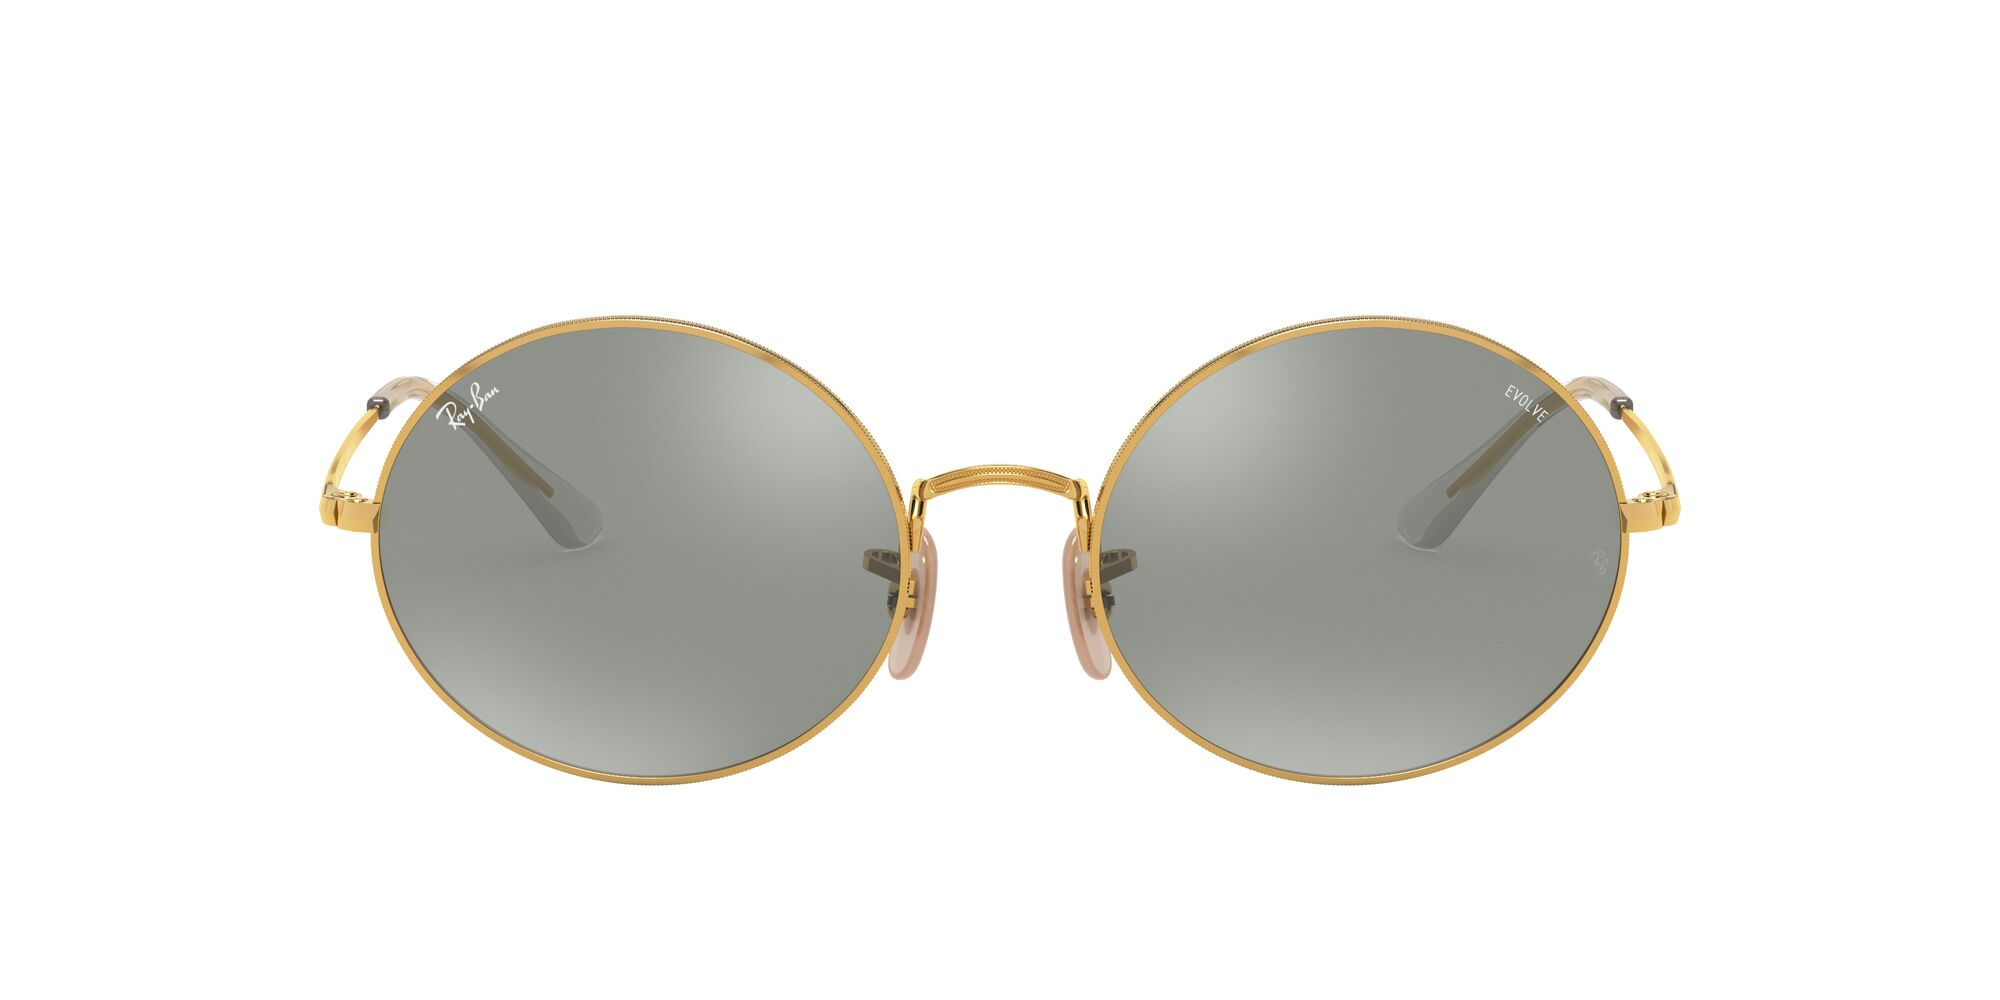 Front Ray-Ban Ray-Ban 0RB1970 001/W3 53/19 Goud/Grijs